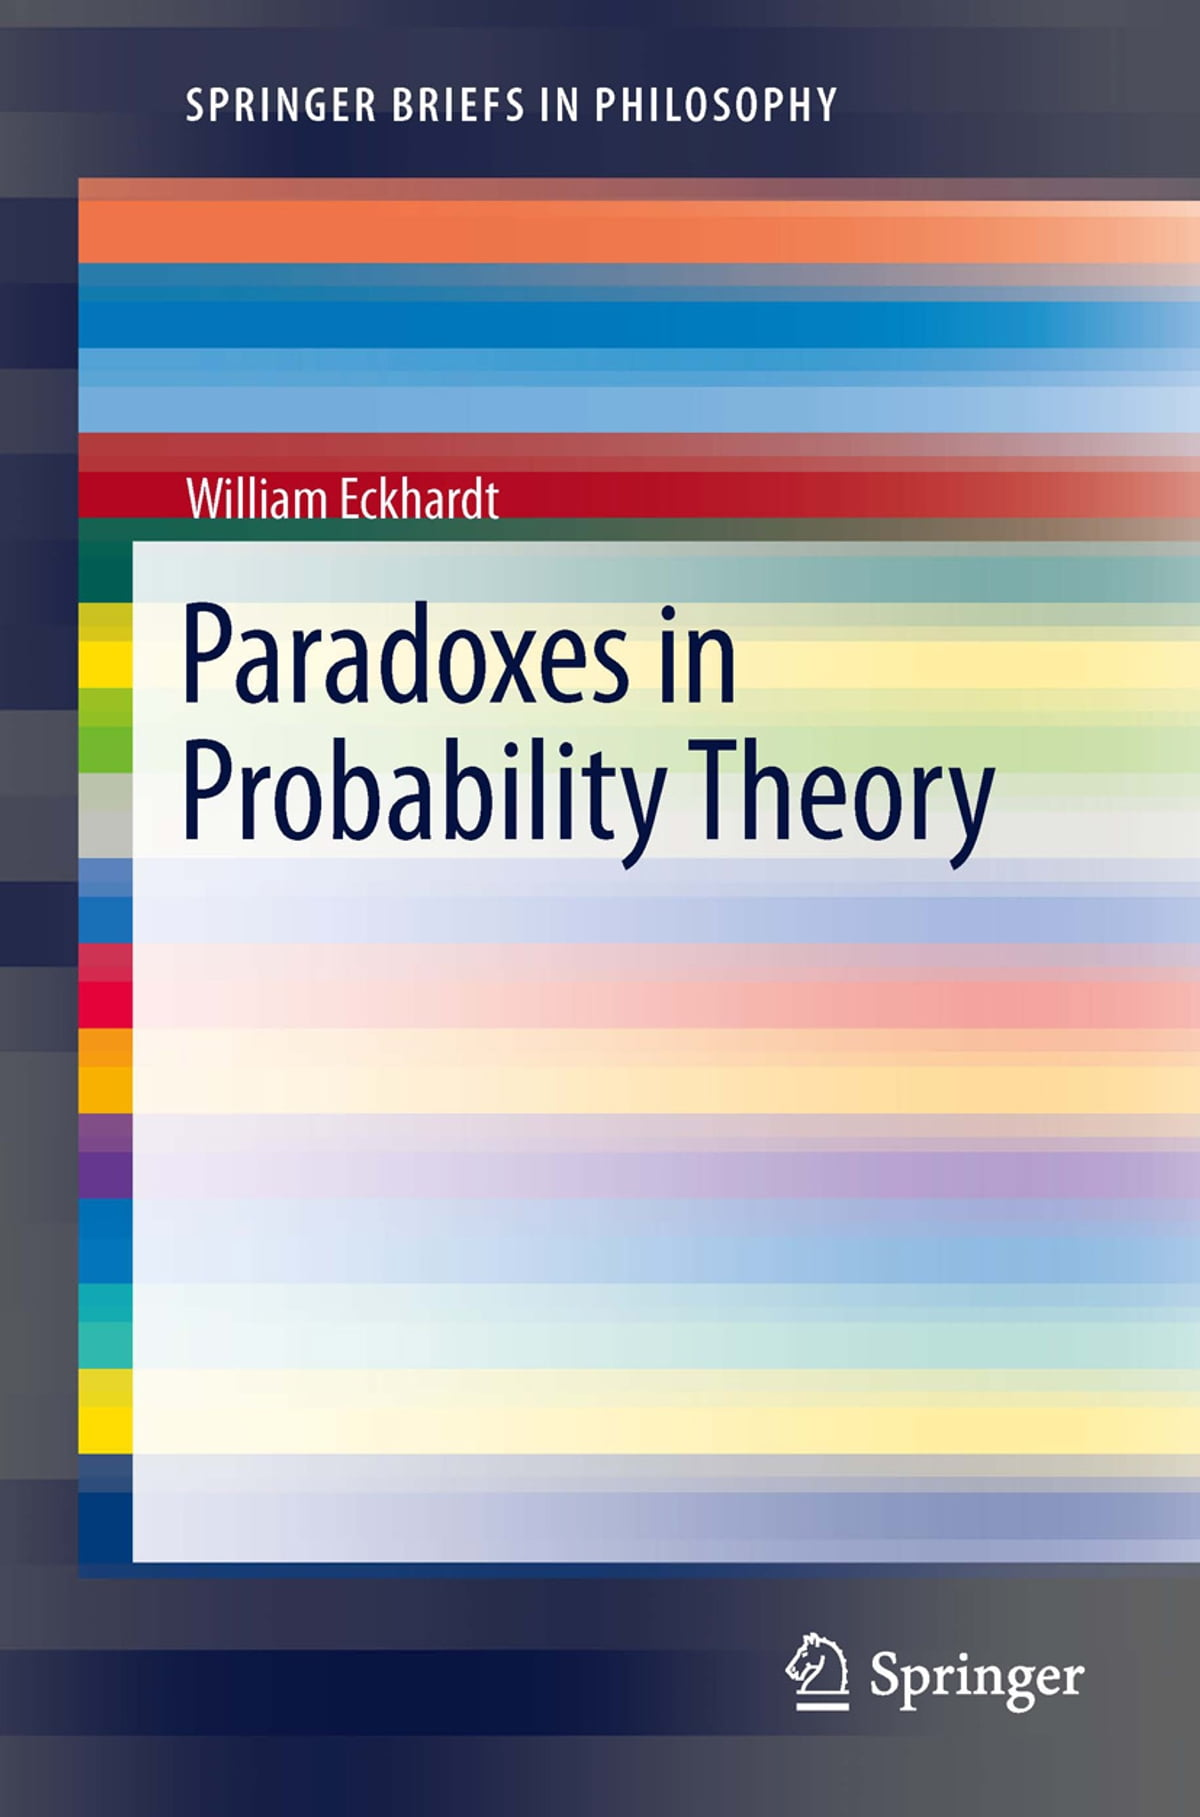 Paradoxes in probability theory ebook by william eckhardt paradoxes in probability theory ebook by william eckhardt 9789400751408 rakuten kobo fandeluxe Choice Image